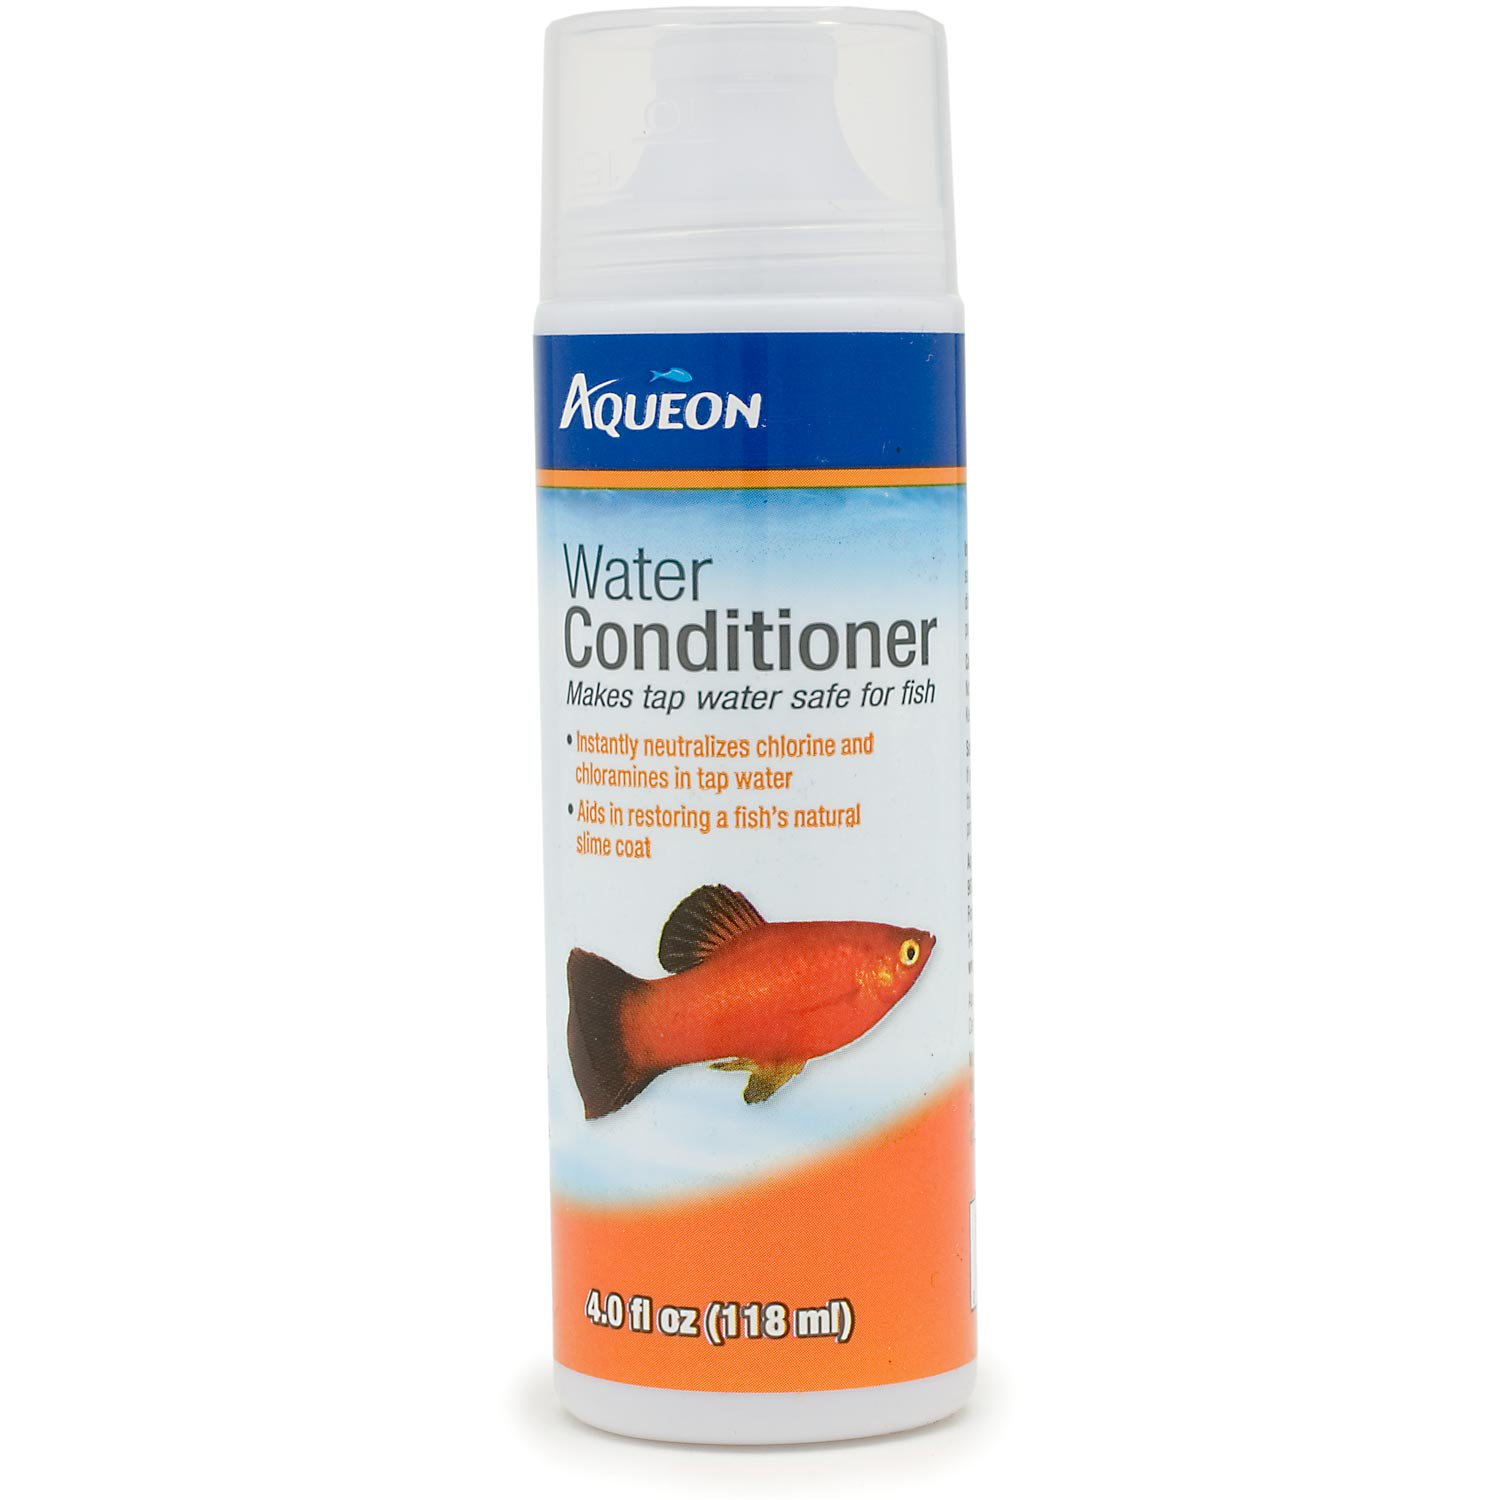 Aqueon Water Conditioner Petco